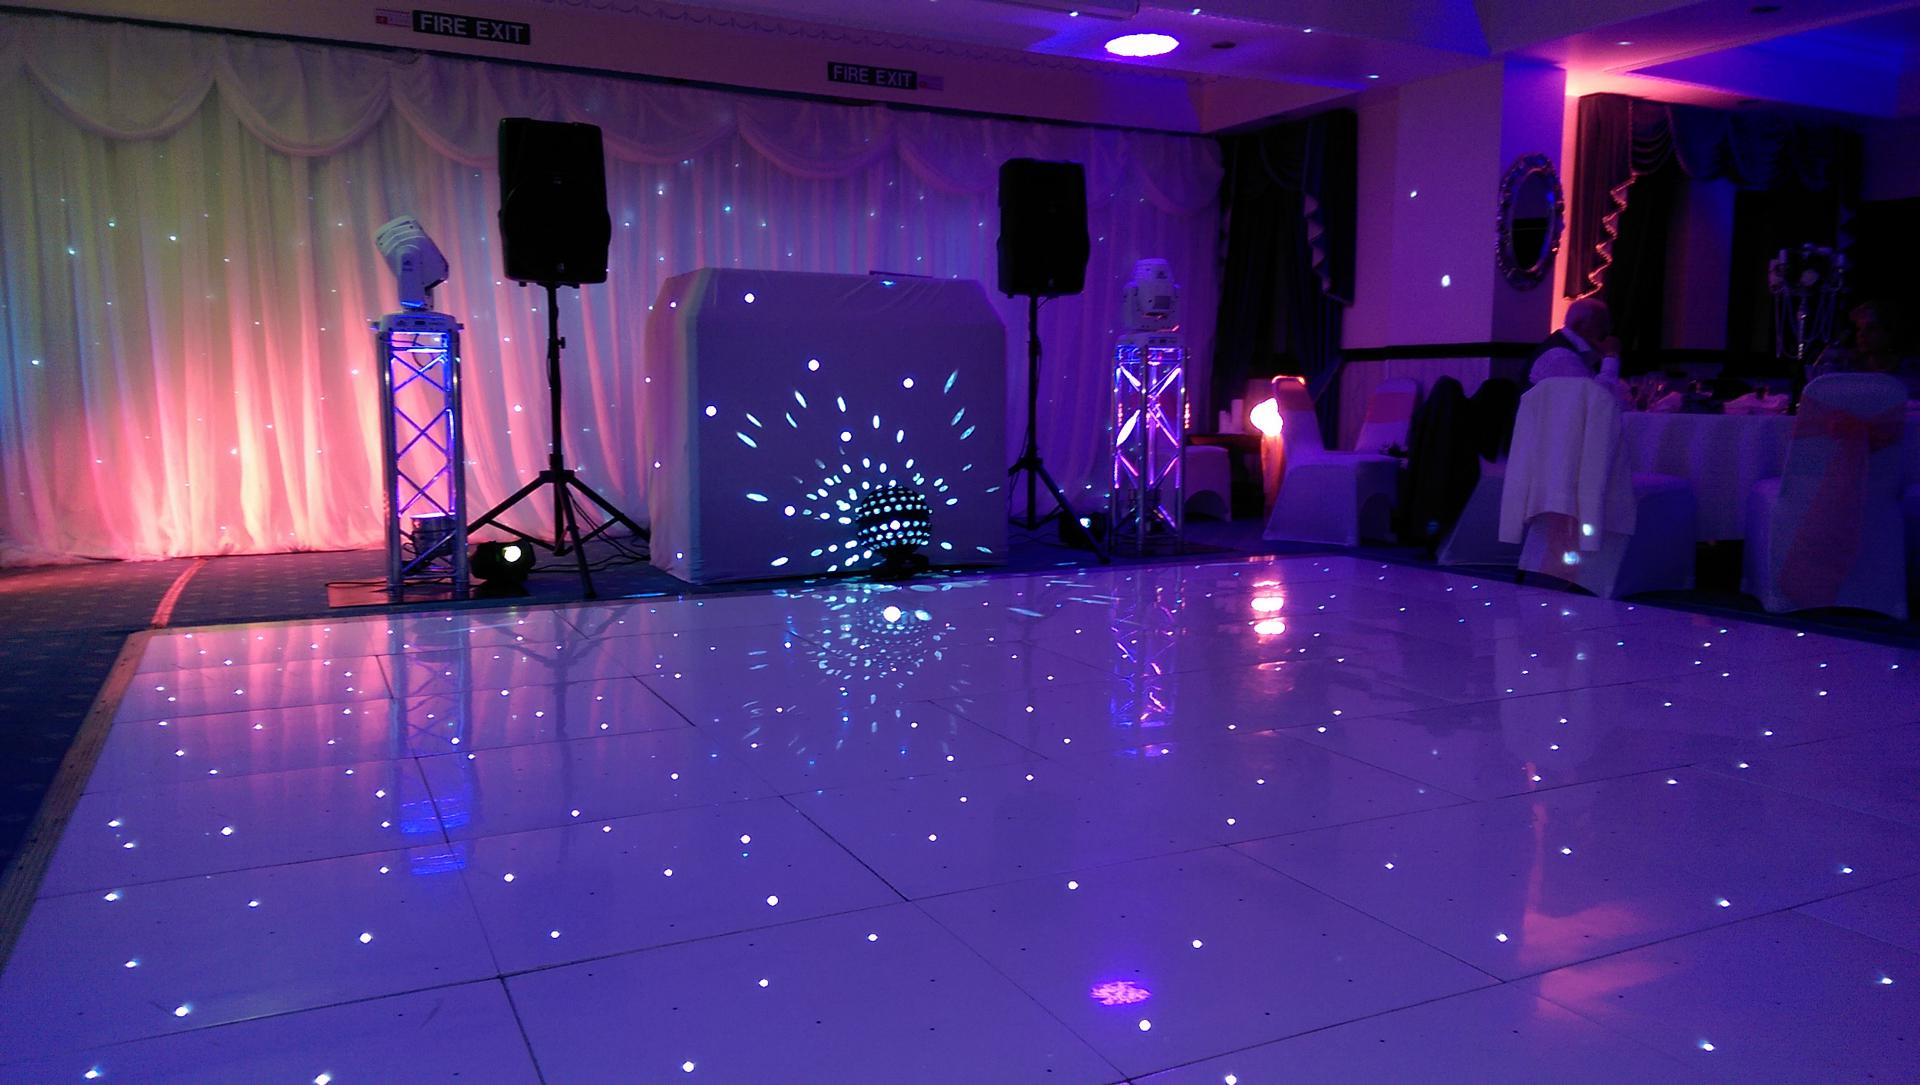 Obsession_entertainment_wedding_photography_wedding_dj_wedding_disco_drapes_lighting_equipment_higher_childrens_party-0068